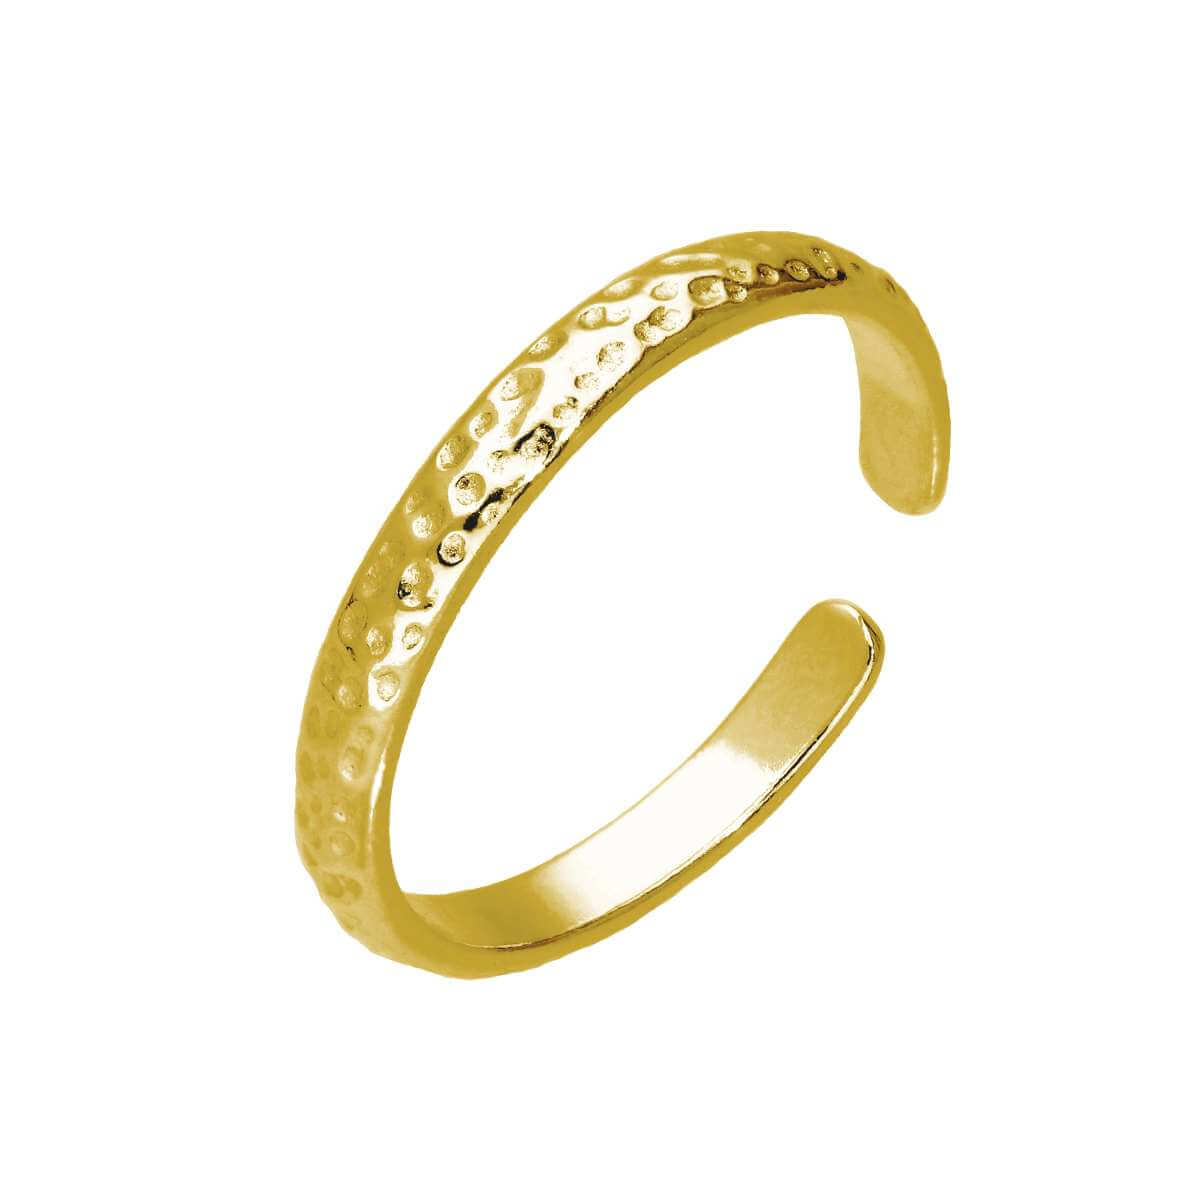 Gold Plated Sterling Silver Hammered Adjustable Toe Ring